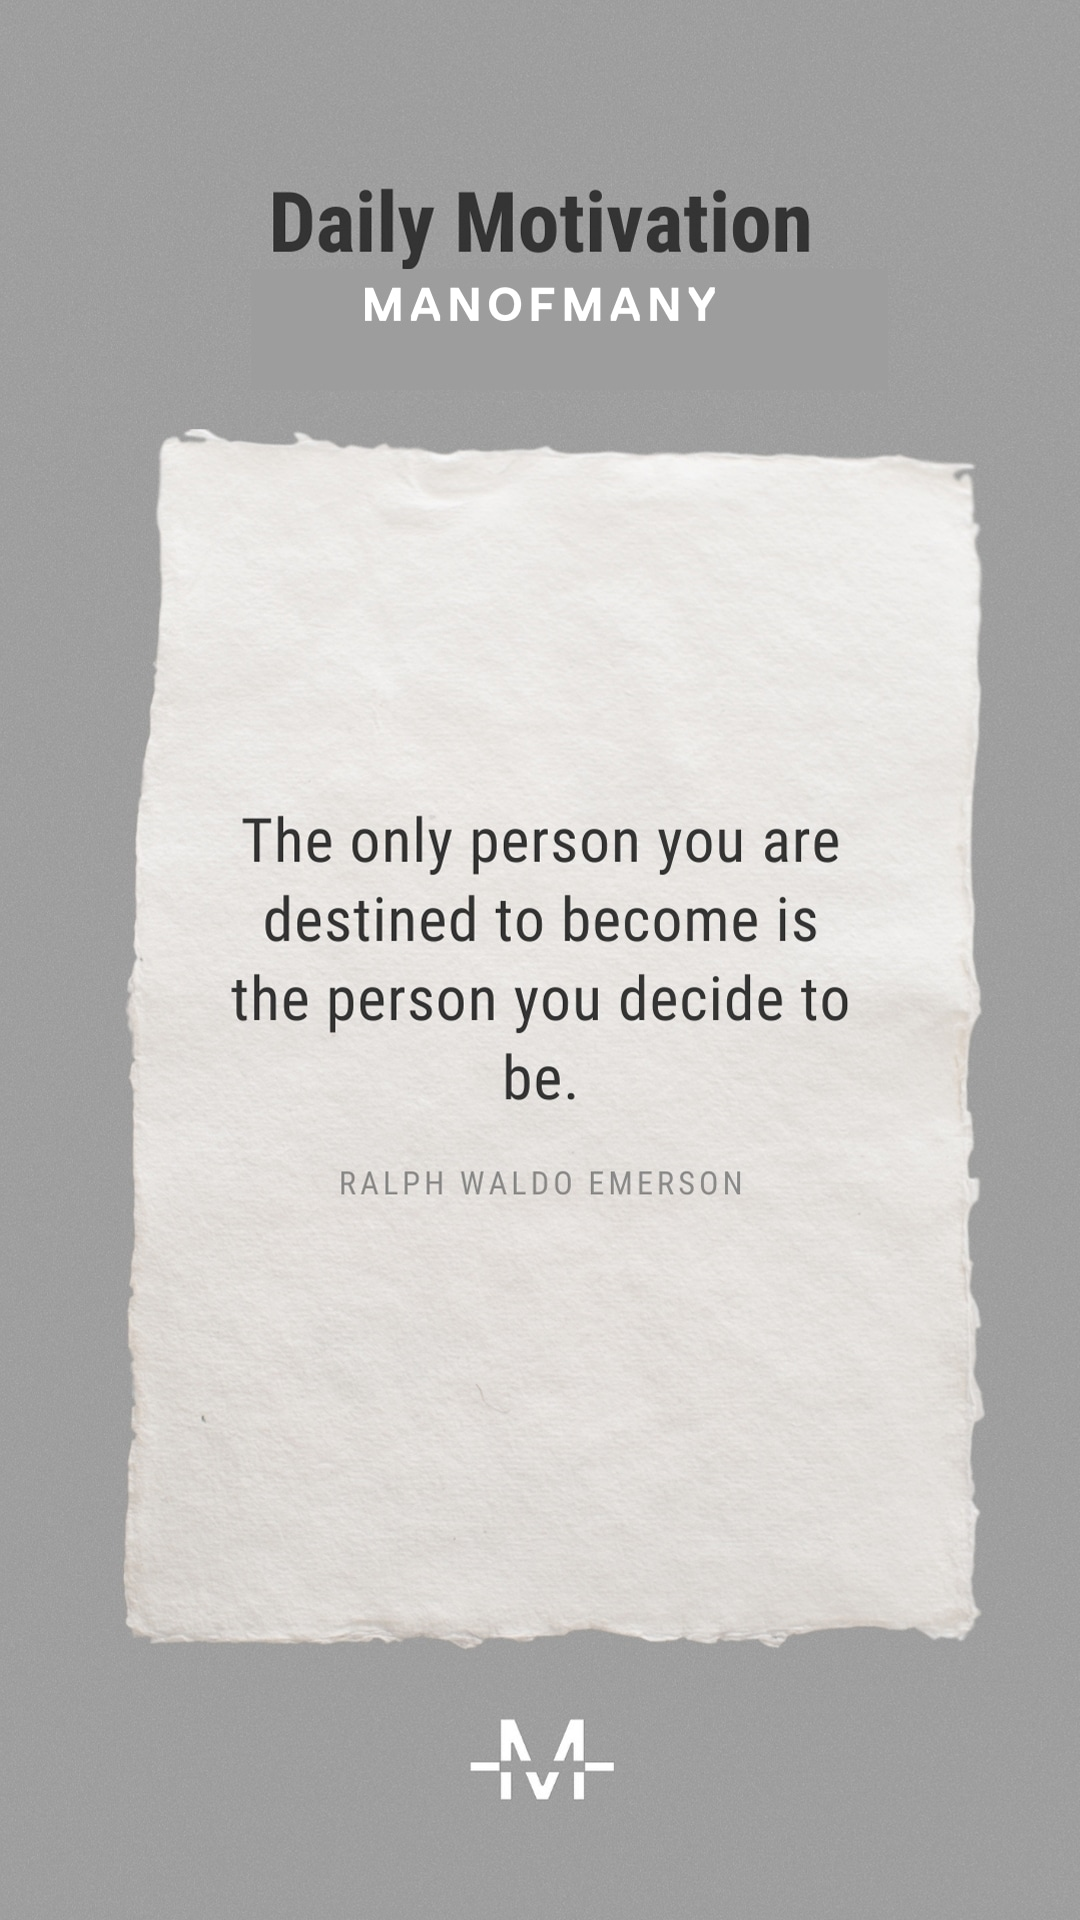 The only person you are destined to become is the person you decide to be. –Ralph Waldo Emerson quote